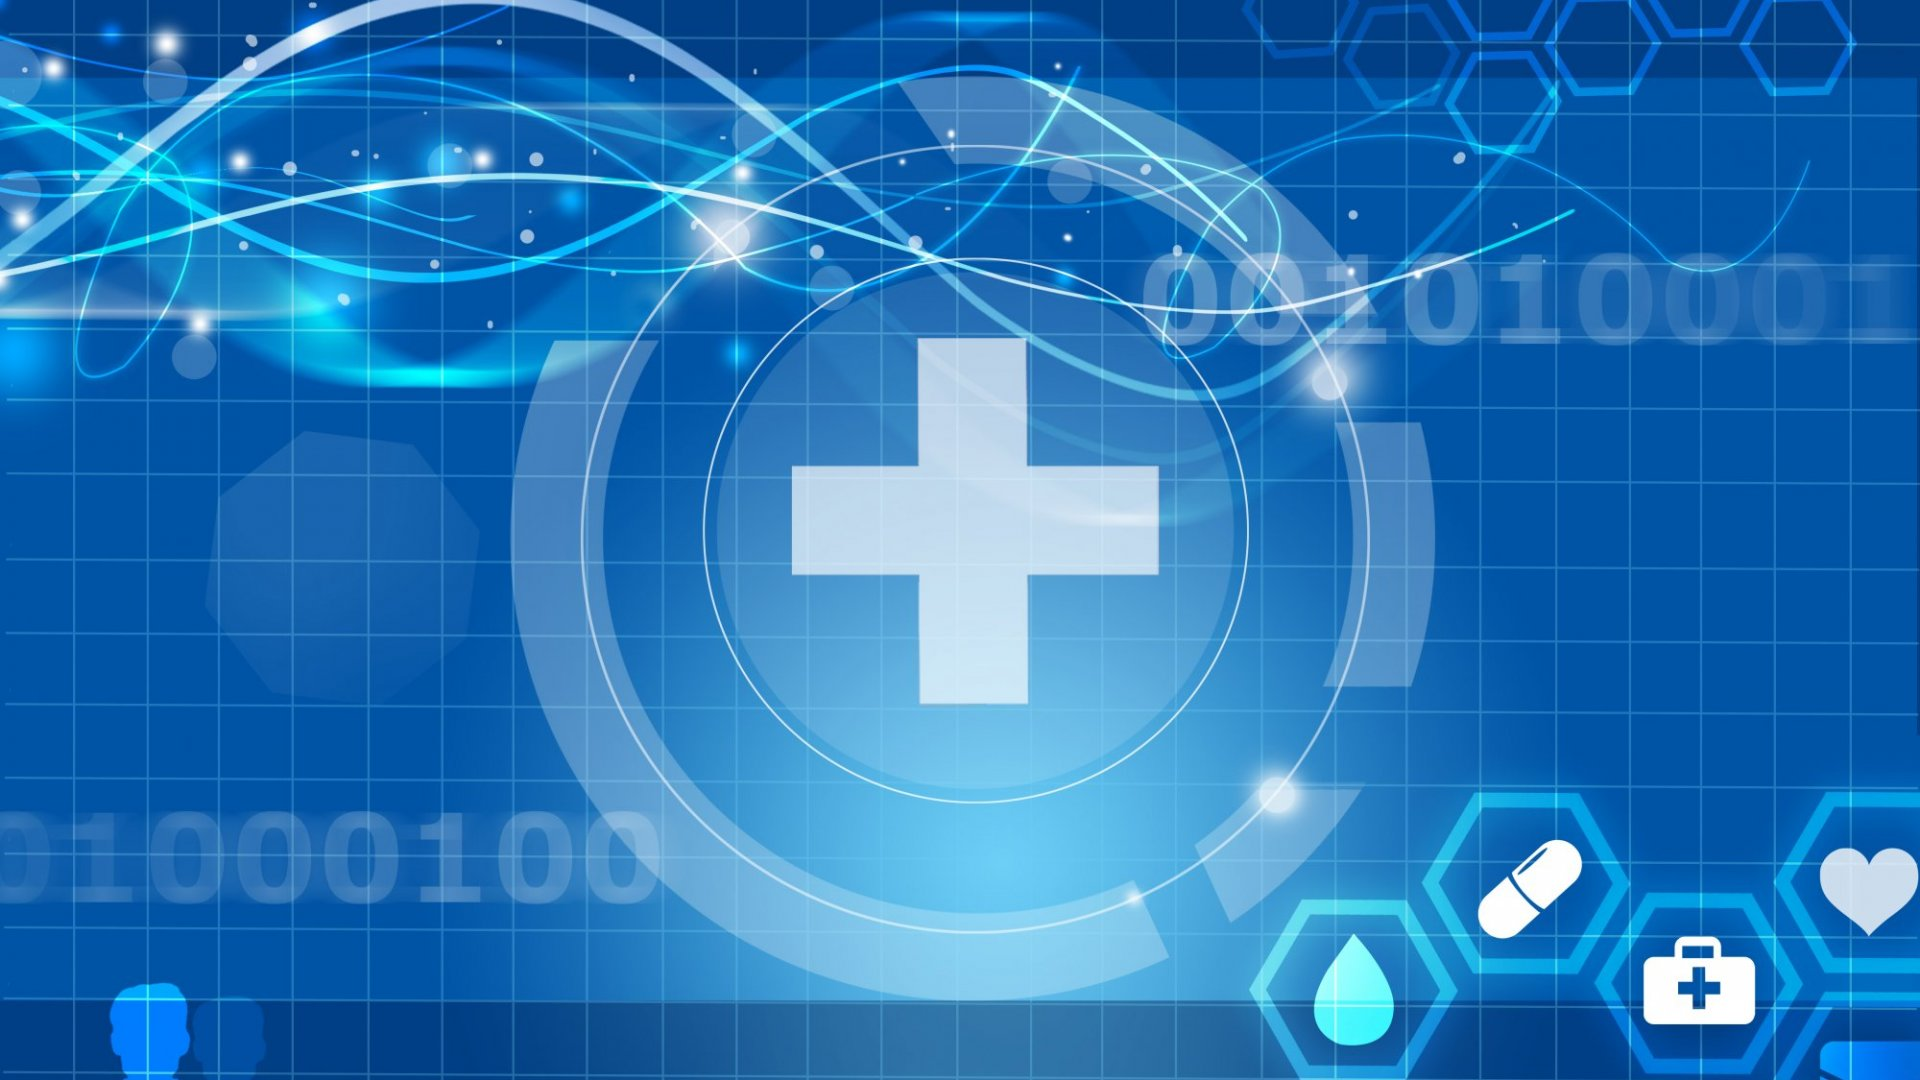 3 Trends in Healthcare Technology That You Need to Know About